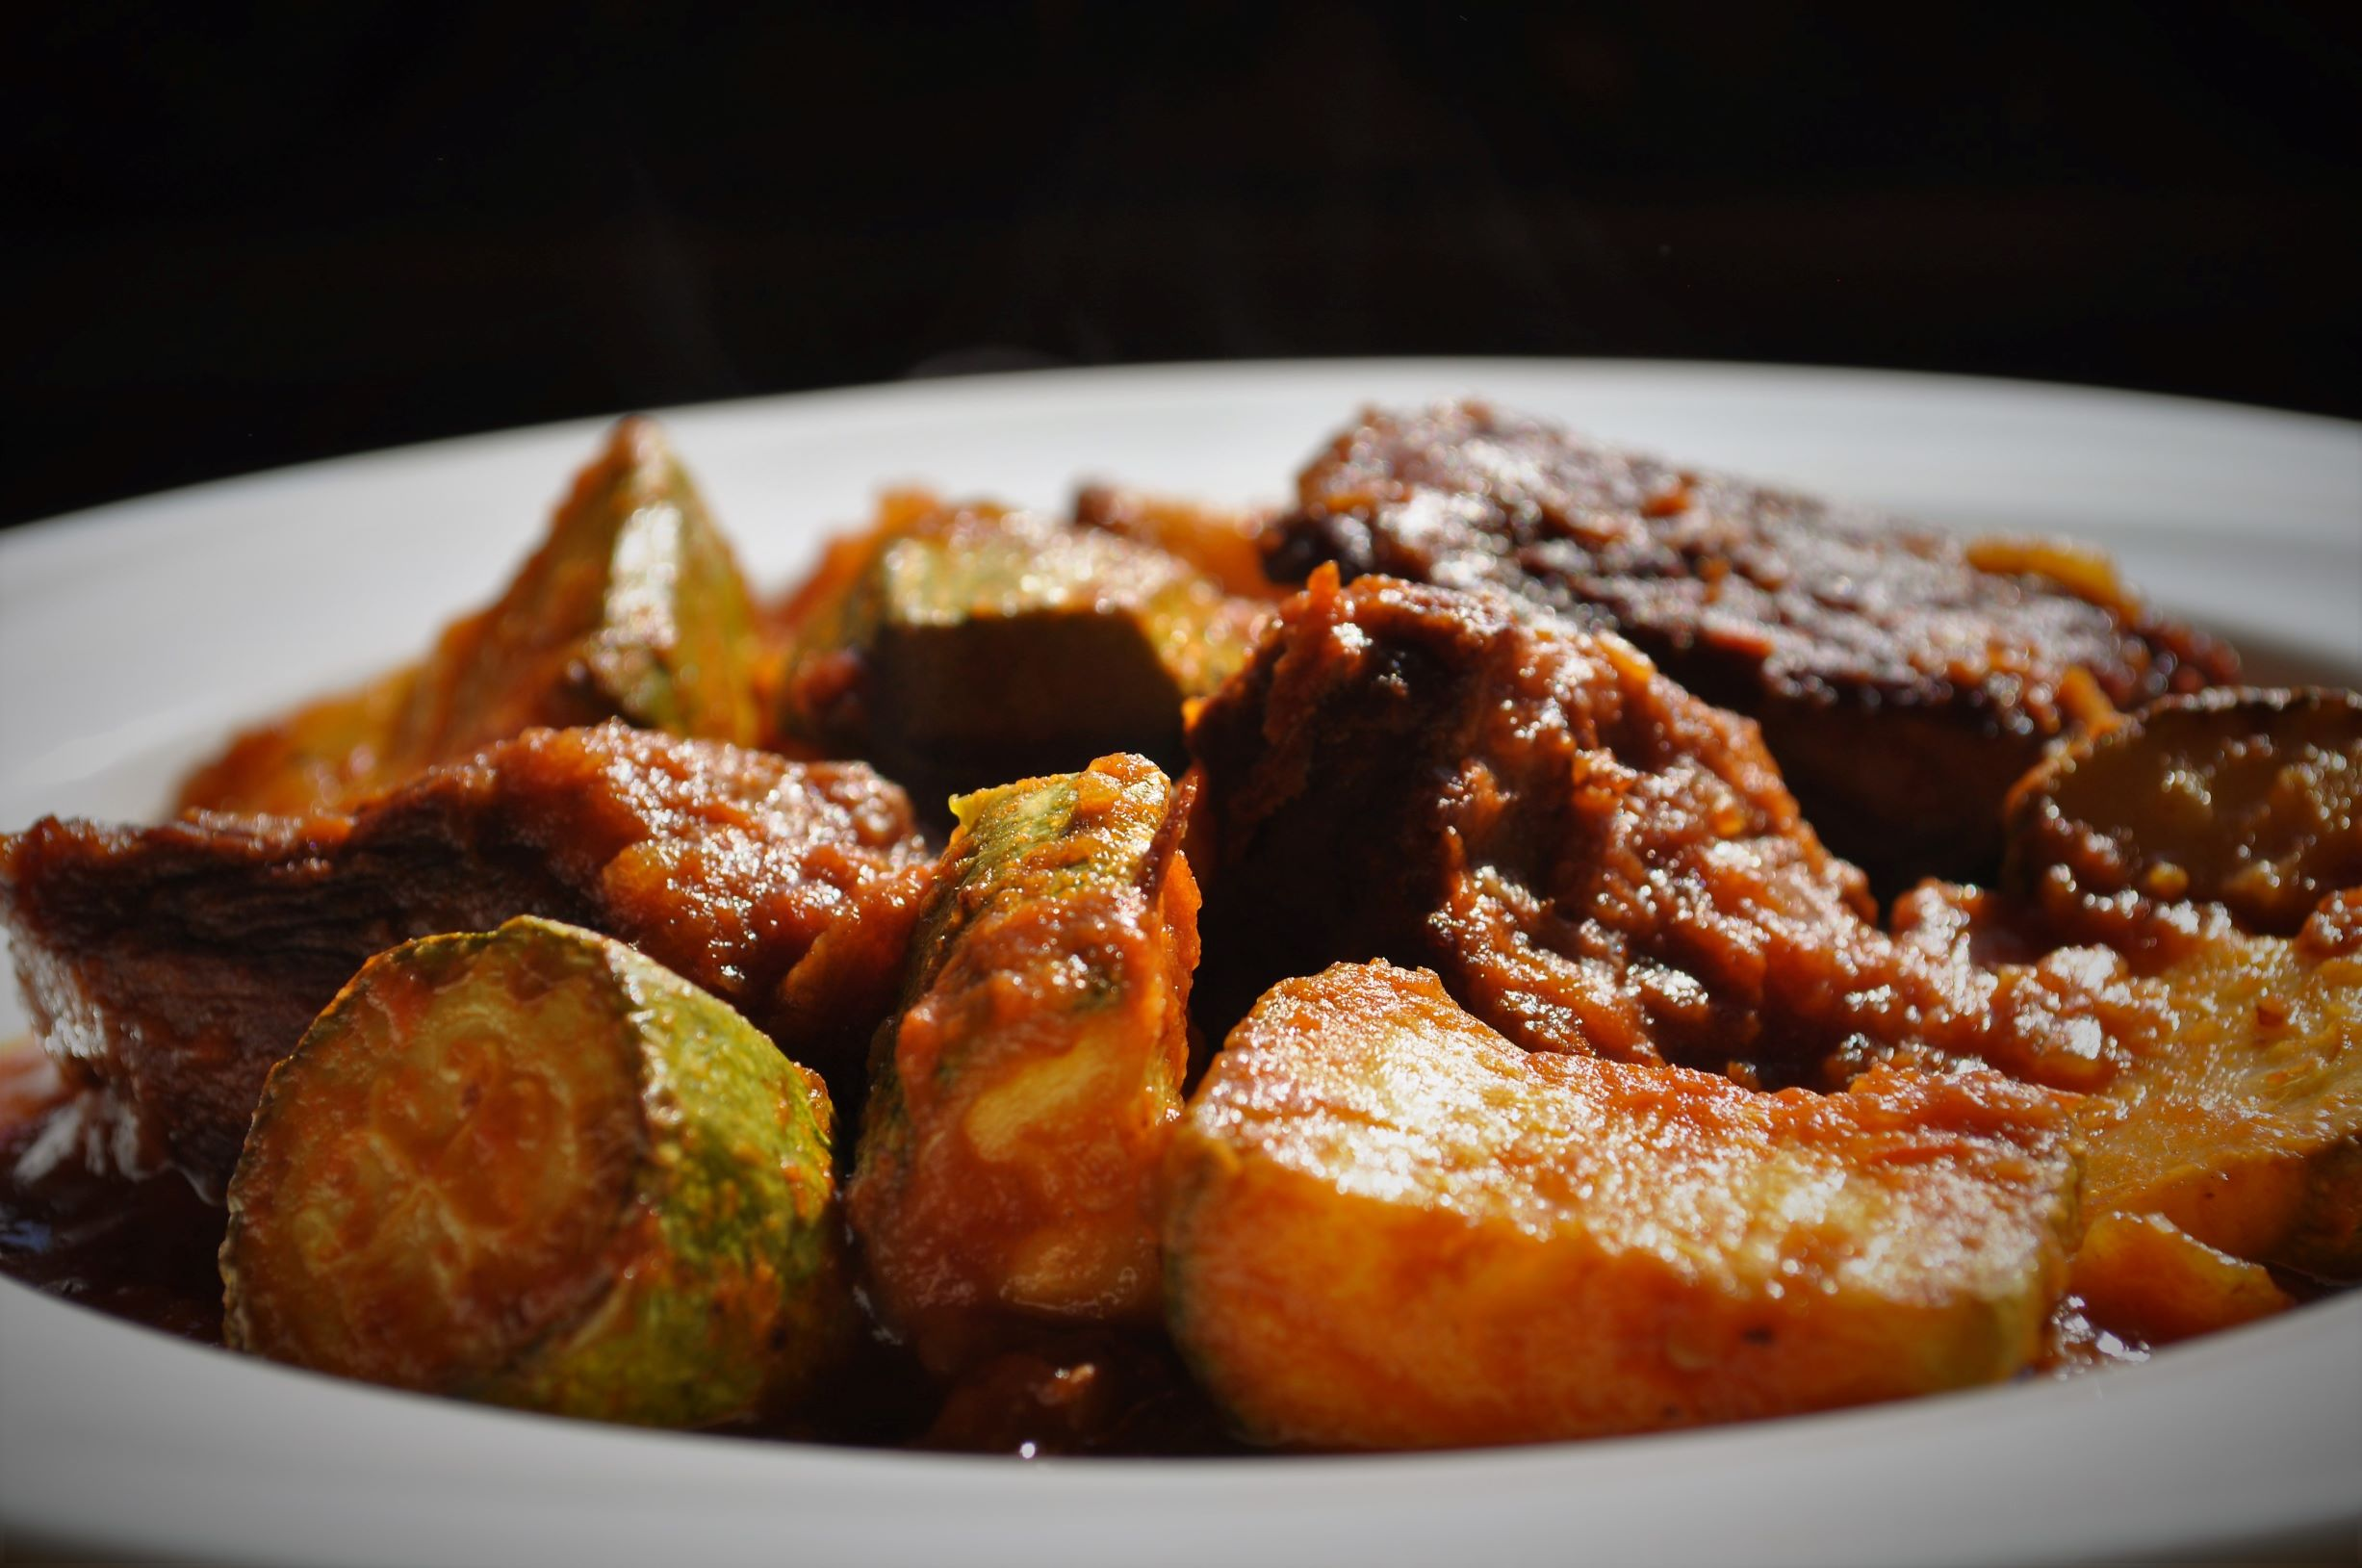 Braised beef with zucchini